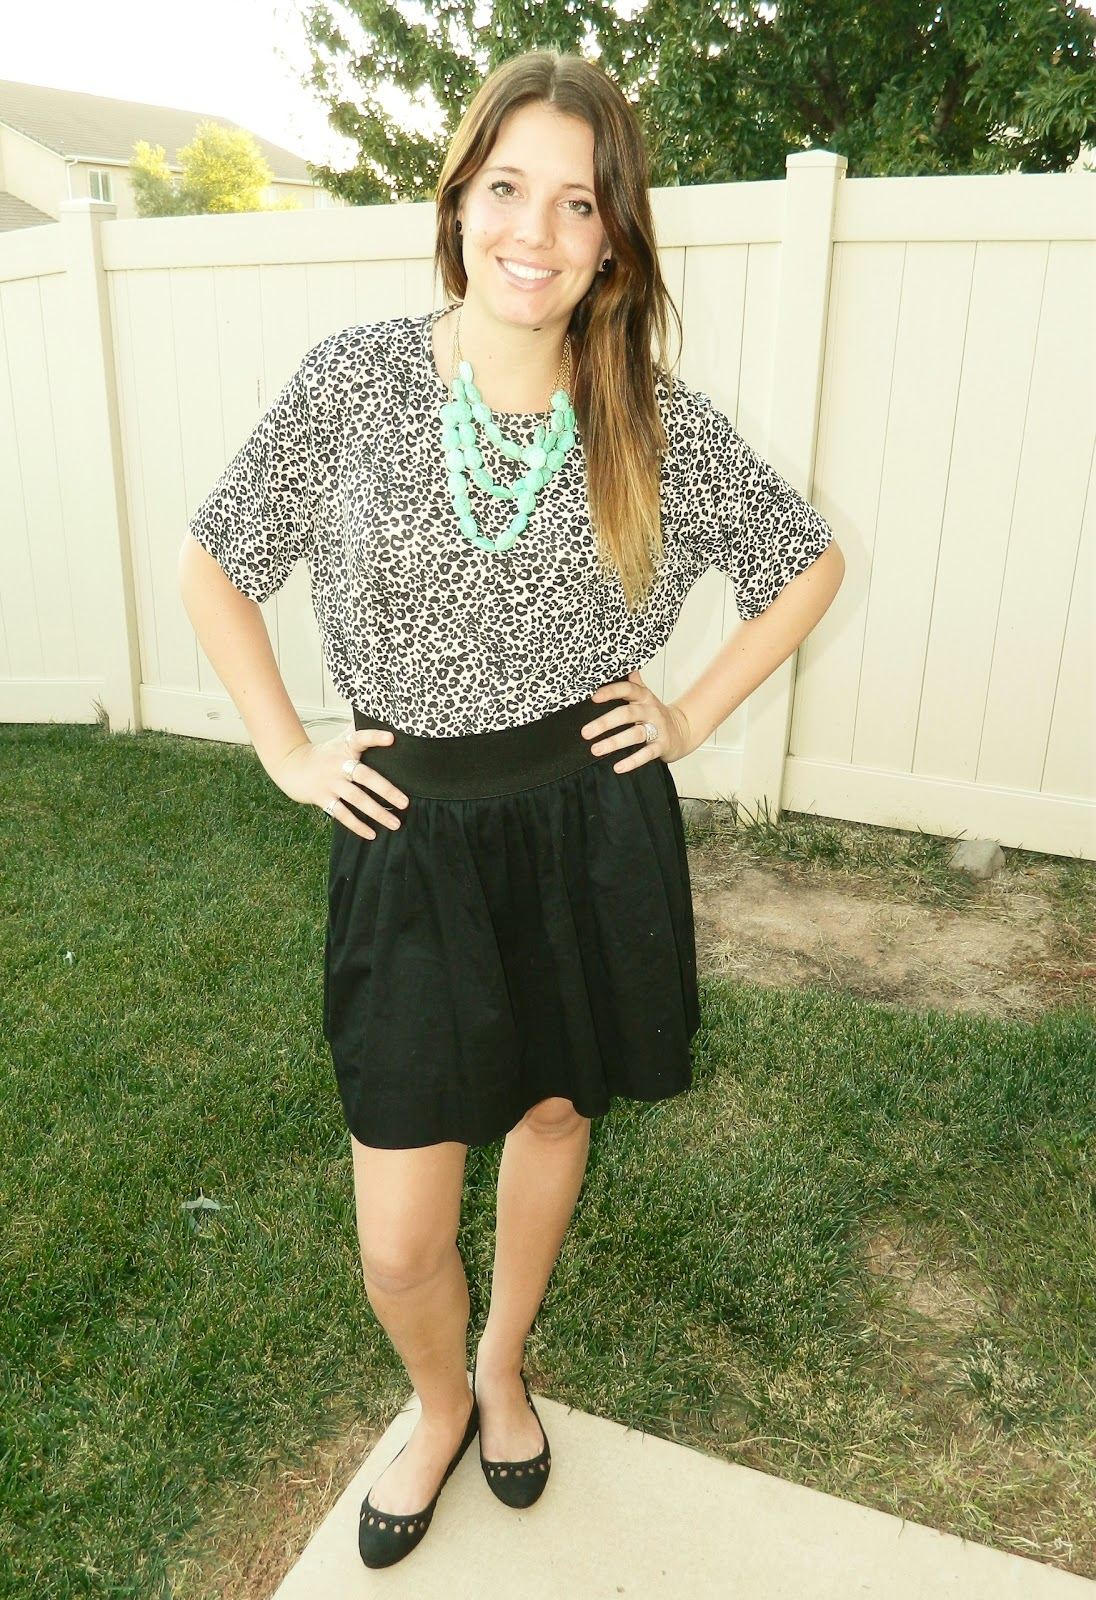 Utah Fashion blogger, modest fashion blogger, animal print, black skirt